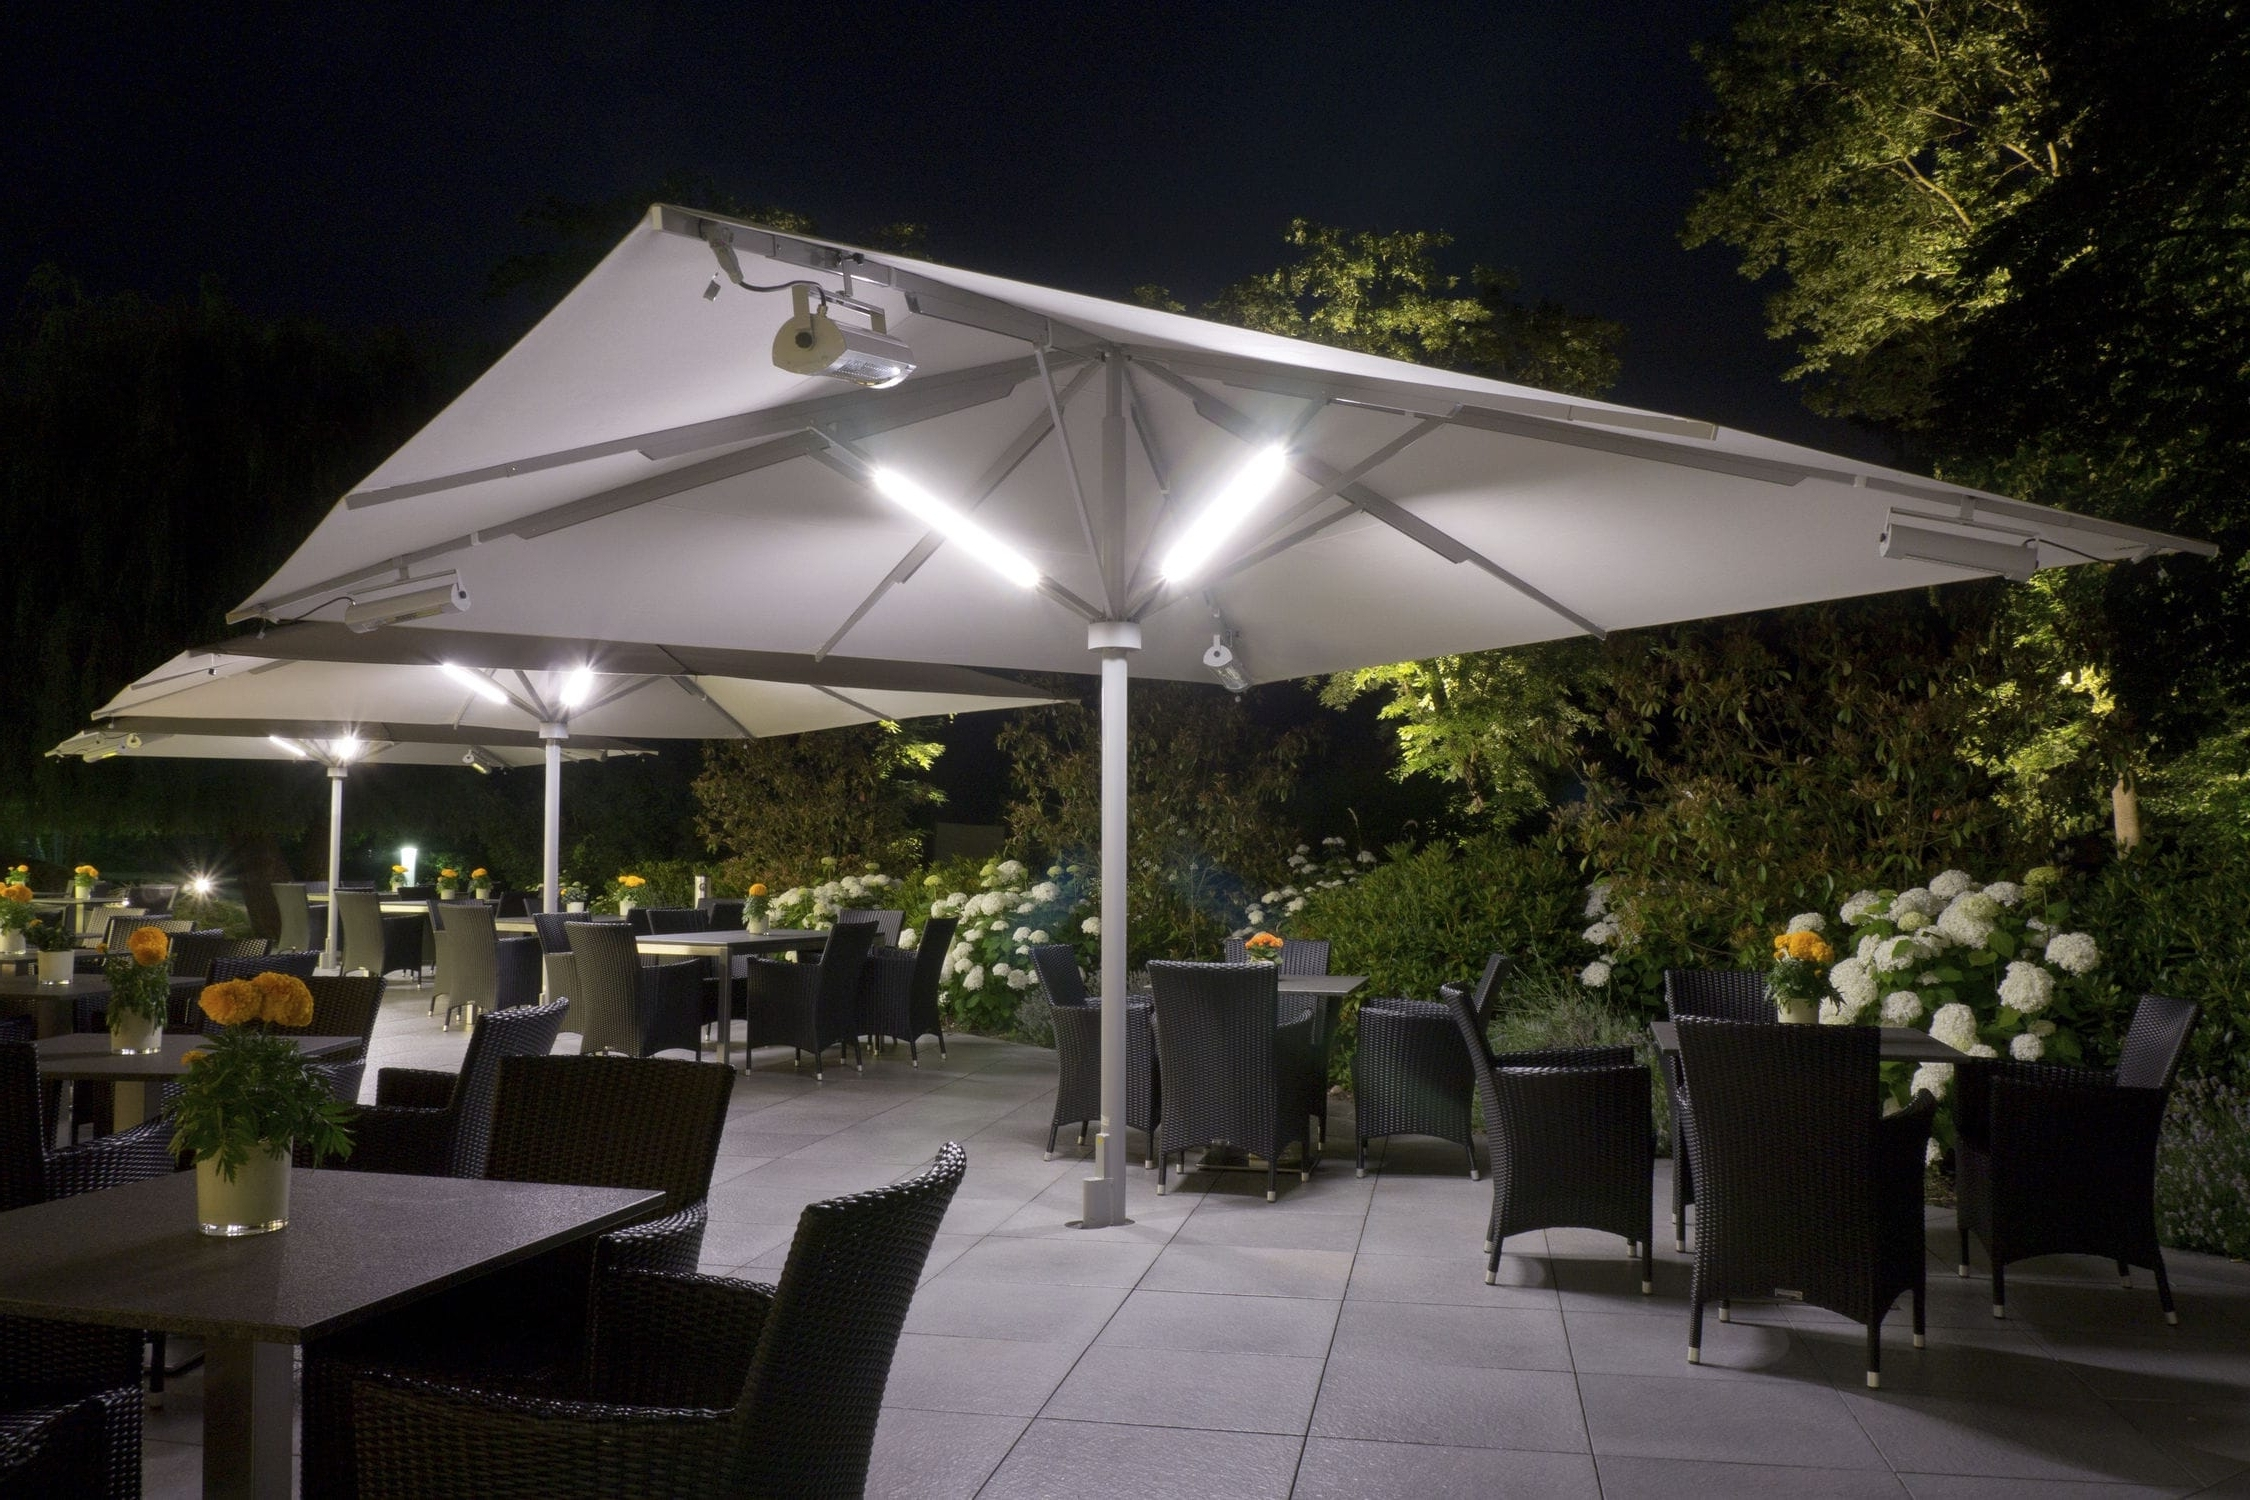 Famous Solar Powered Lights For Patio Umbrellas • Patio Ideas Inside European Patio Umbrellas (Gallery 20 of 20)